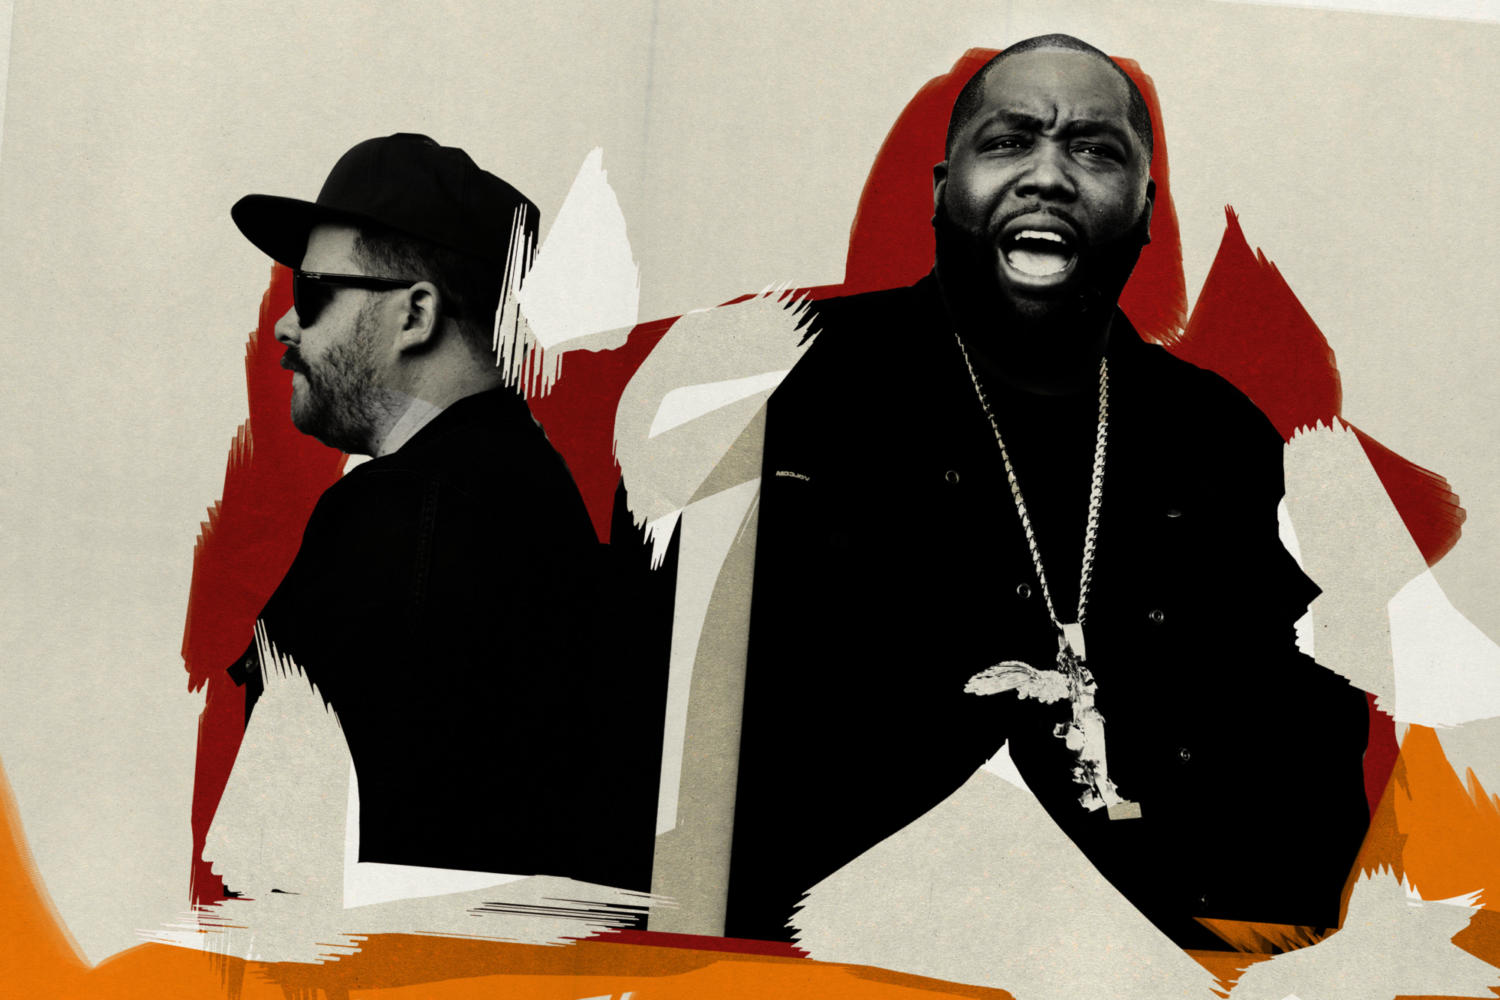 BOOTS teams up with Run The Jewels on 'Delete Delete'